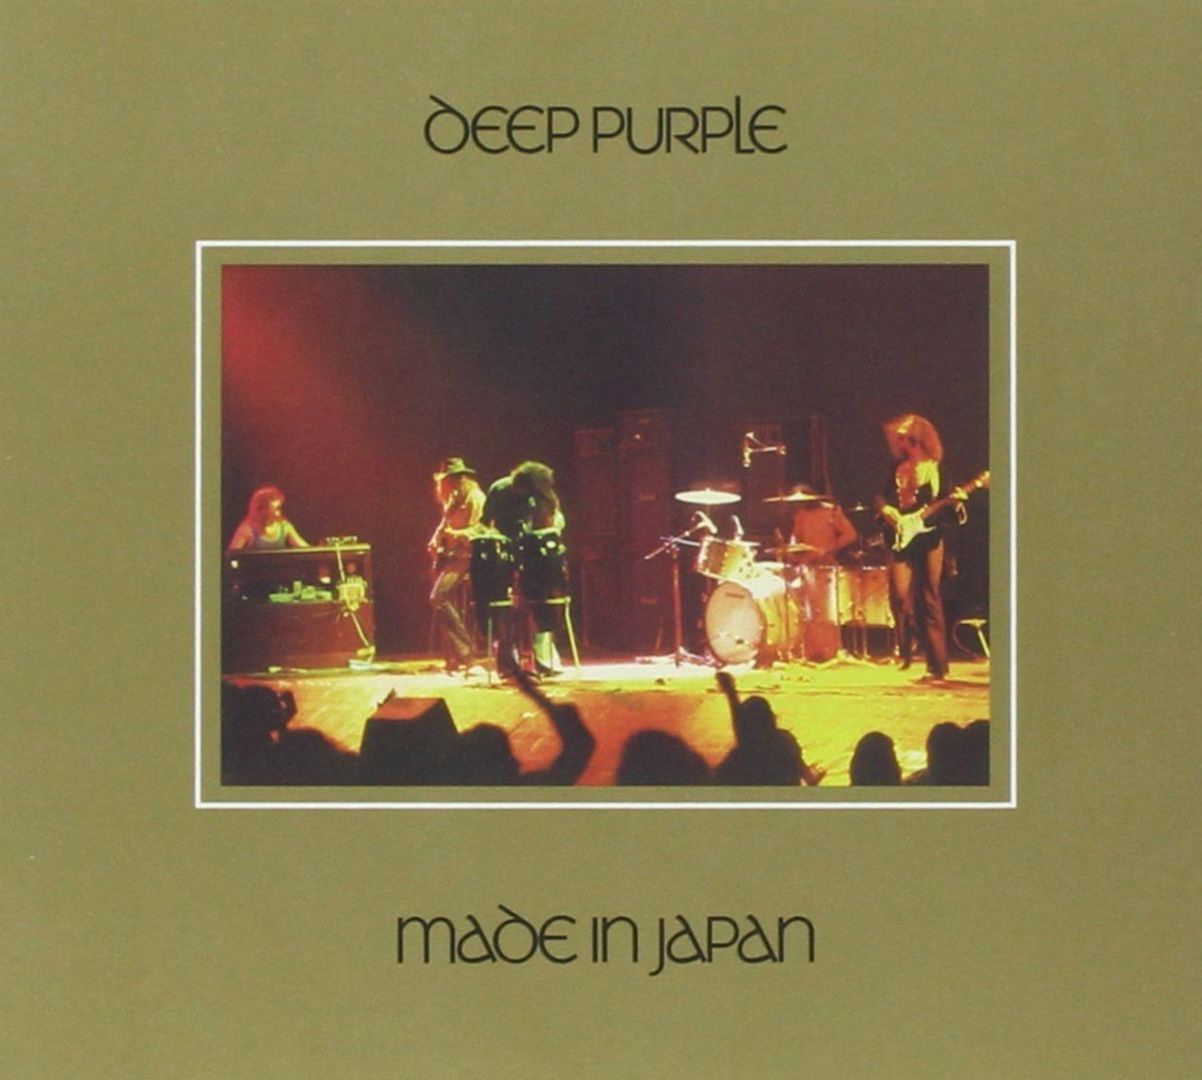 DEEP PURPLE - MADE IN JAPAN (1972)